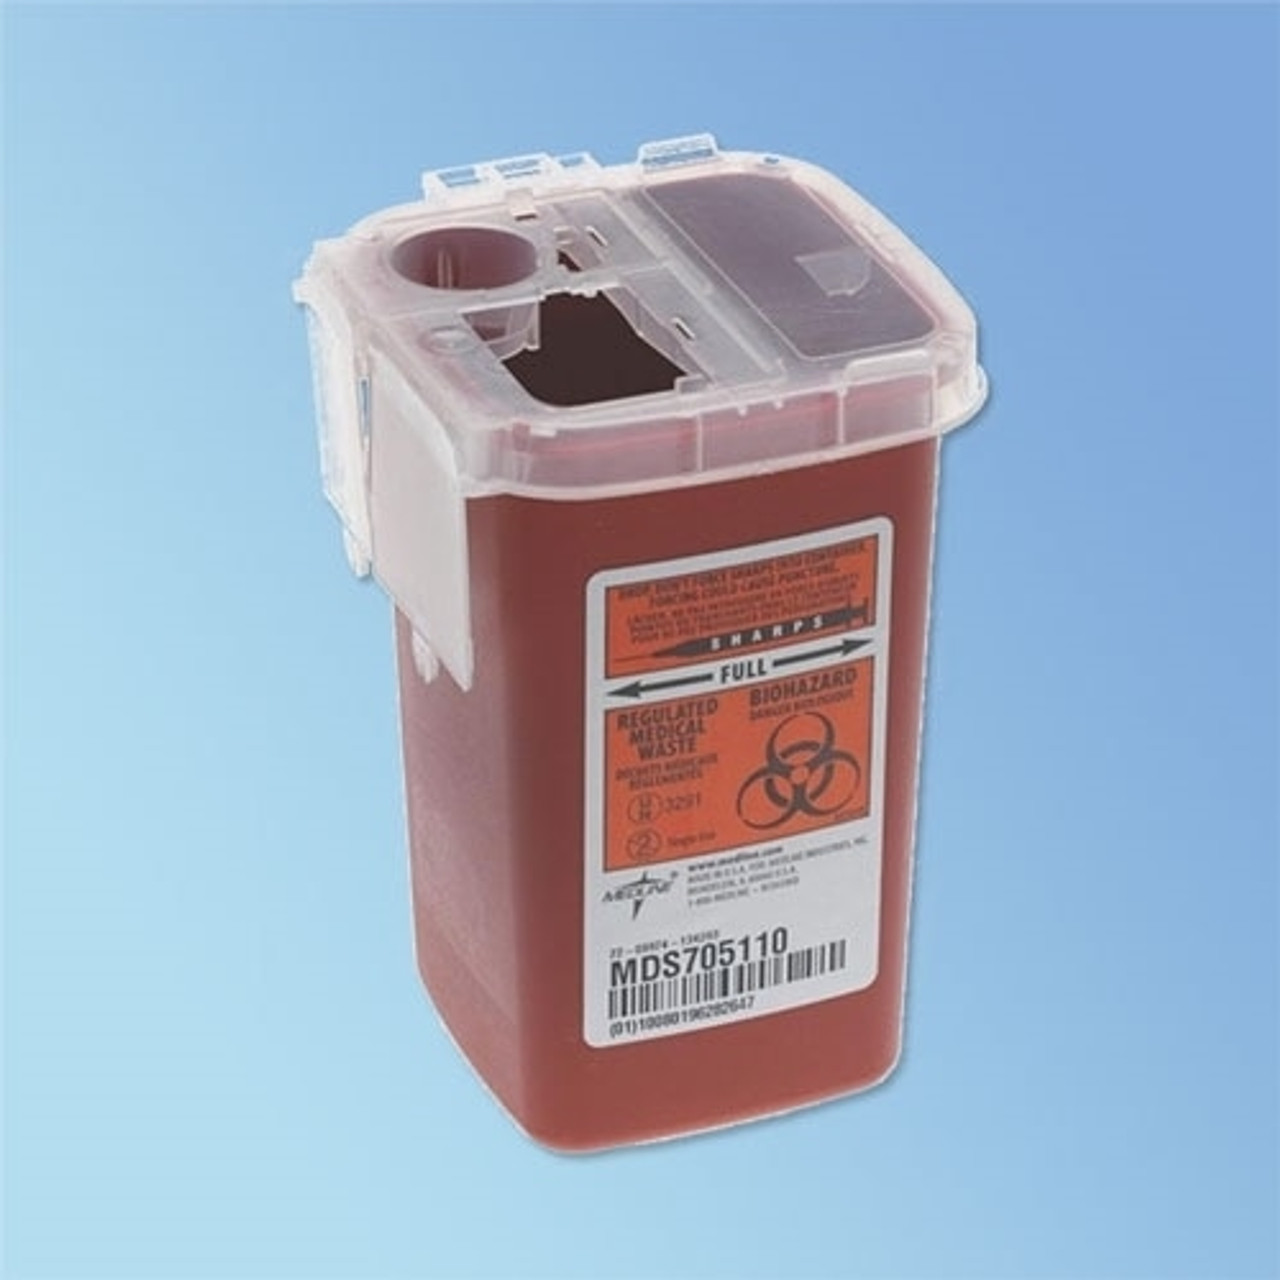 Medical Office Sharps Containers